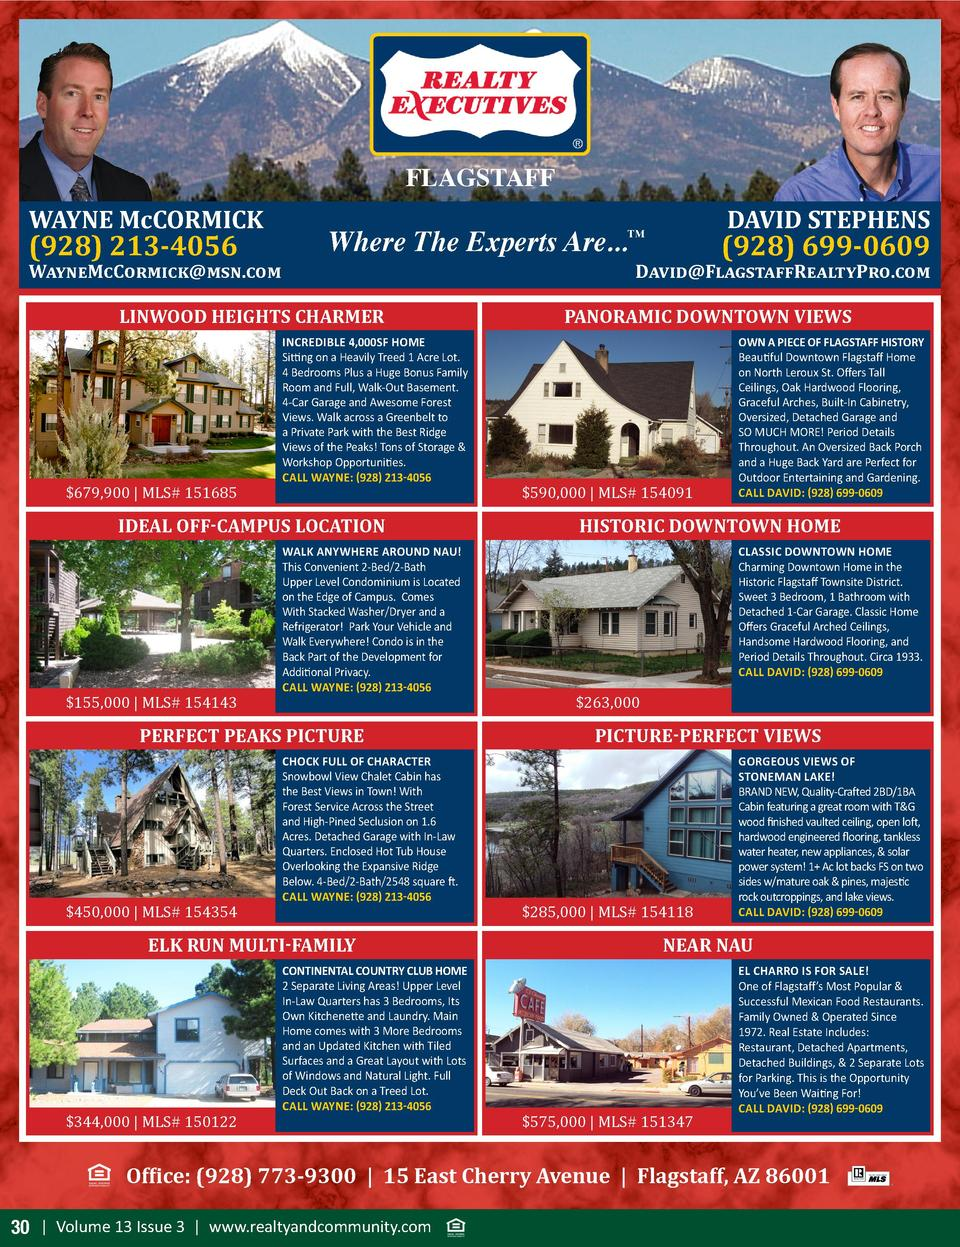 FLAGSTAFF WAYNE McCORMICK   928  213-4056  WayneMcCormick msn.com  Where The Experts Are...  LINWOOD HEIGHTS CHARMER   679...